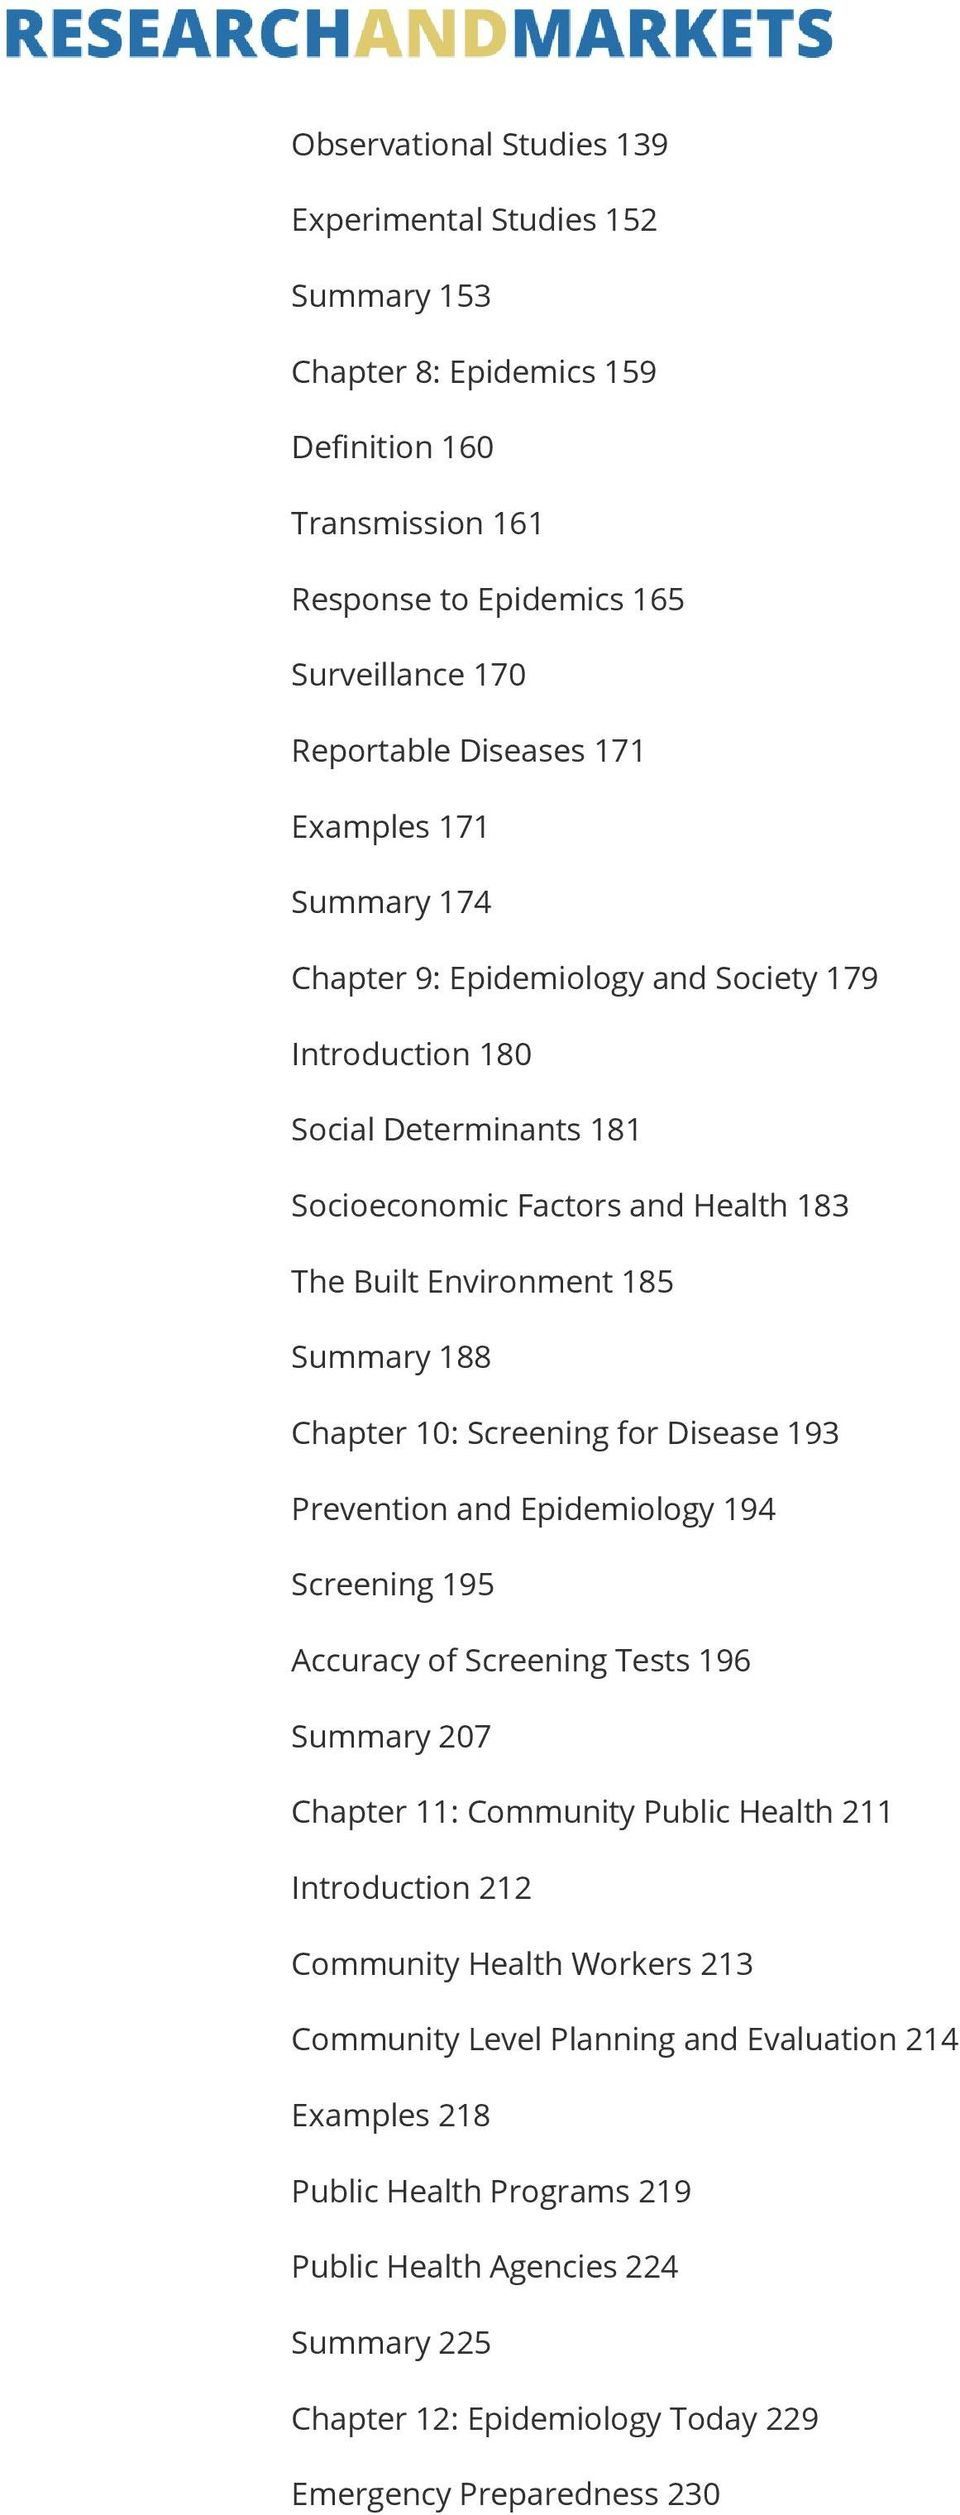 10: Screening for Disease 193 Prevention and Epidemiology 194 Screening 195 Accuracy of Screening Tests 196 Summary 207 Chapter 11: Community Public Health 211 Introduction 212 Community